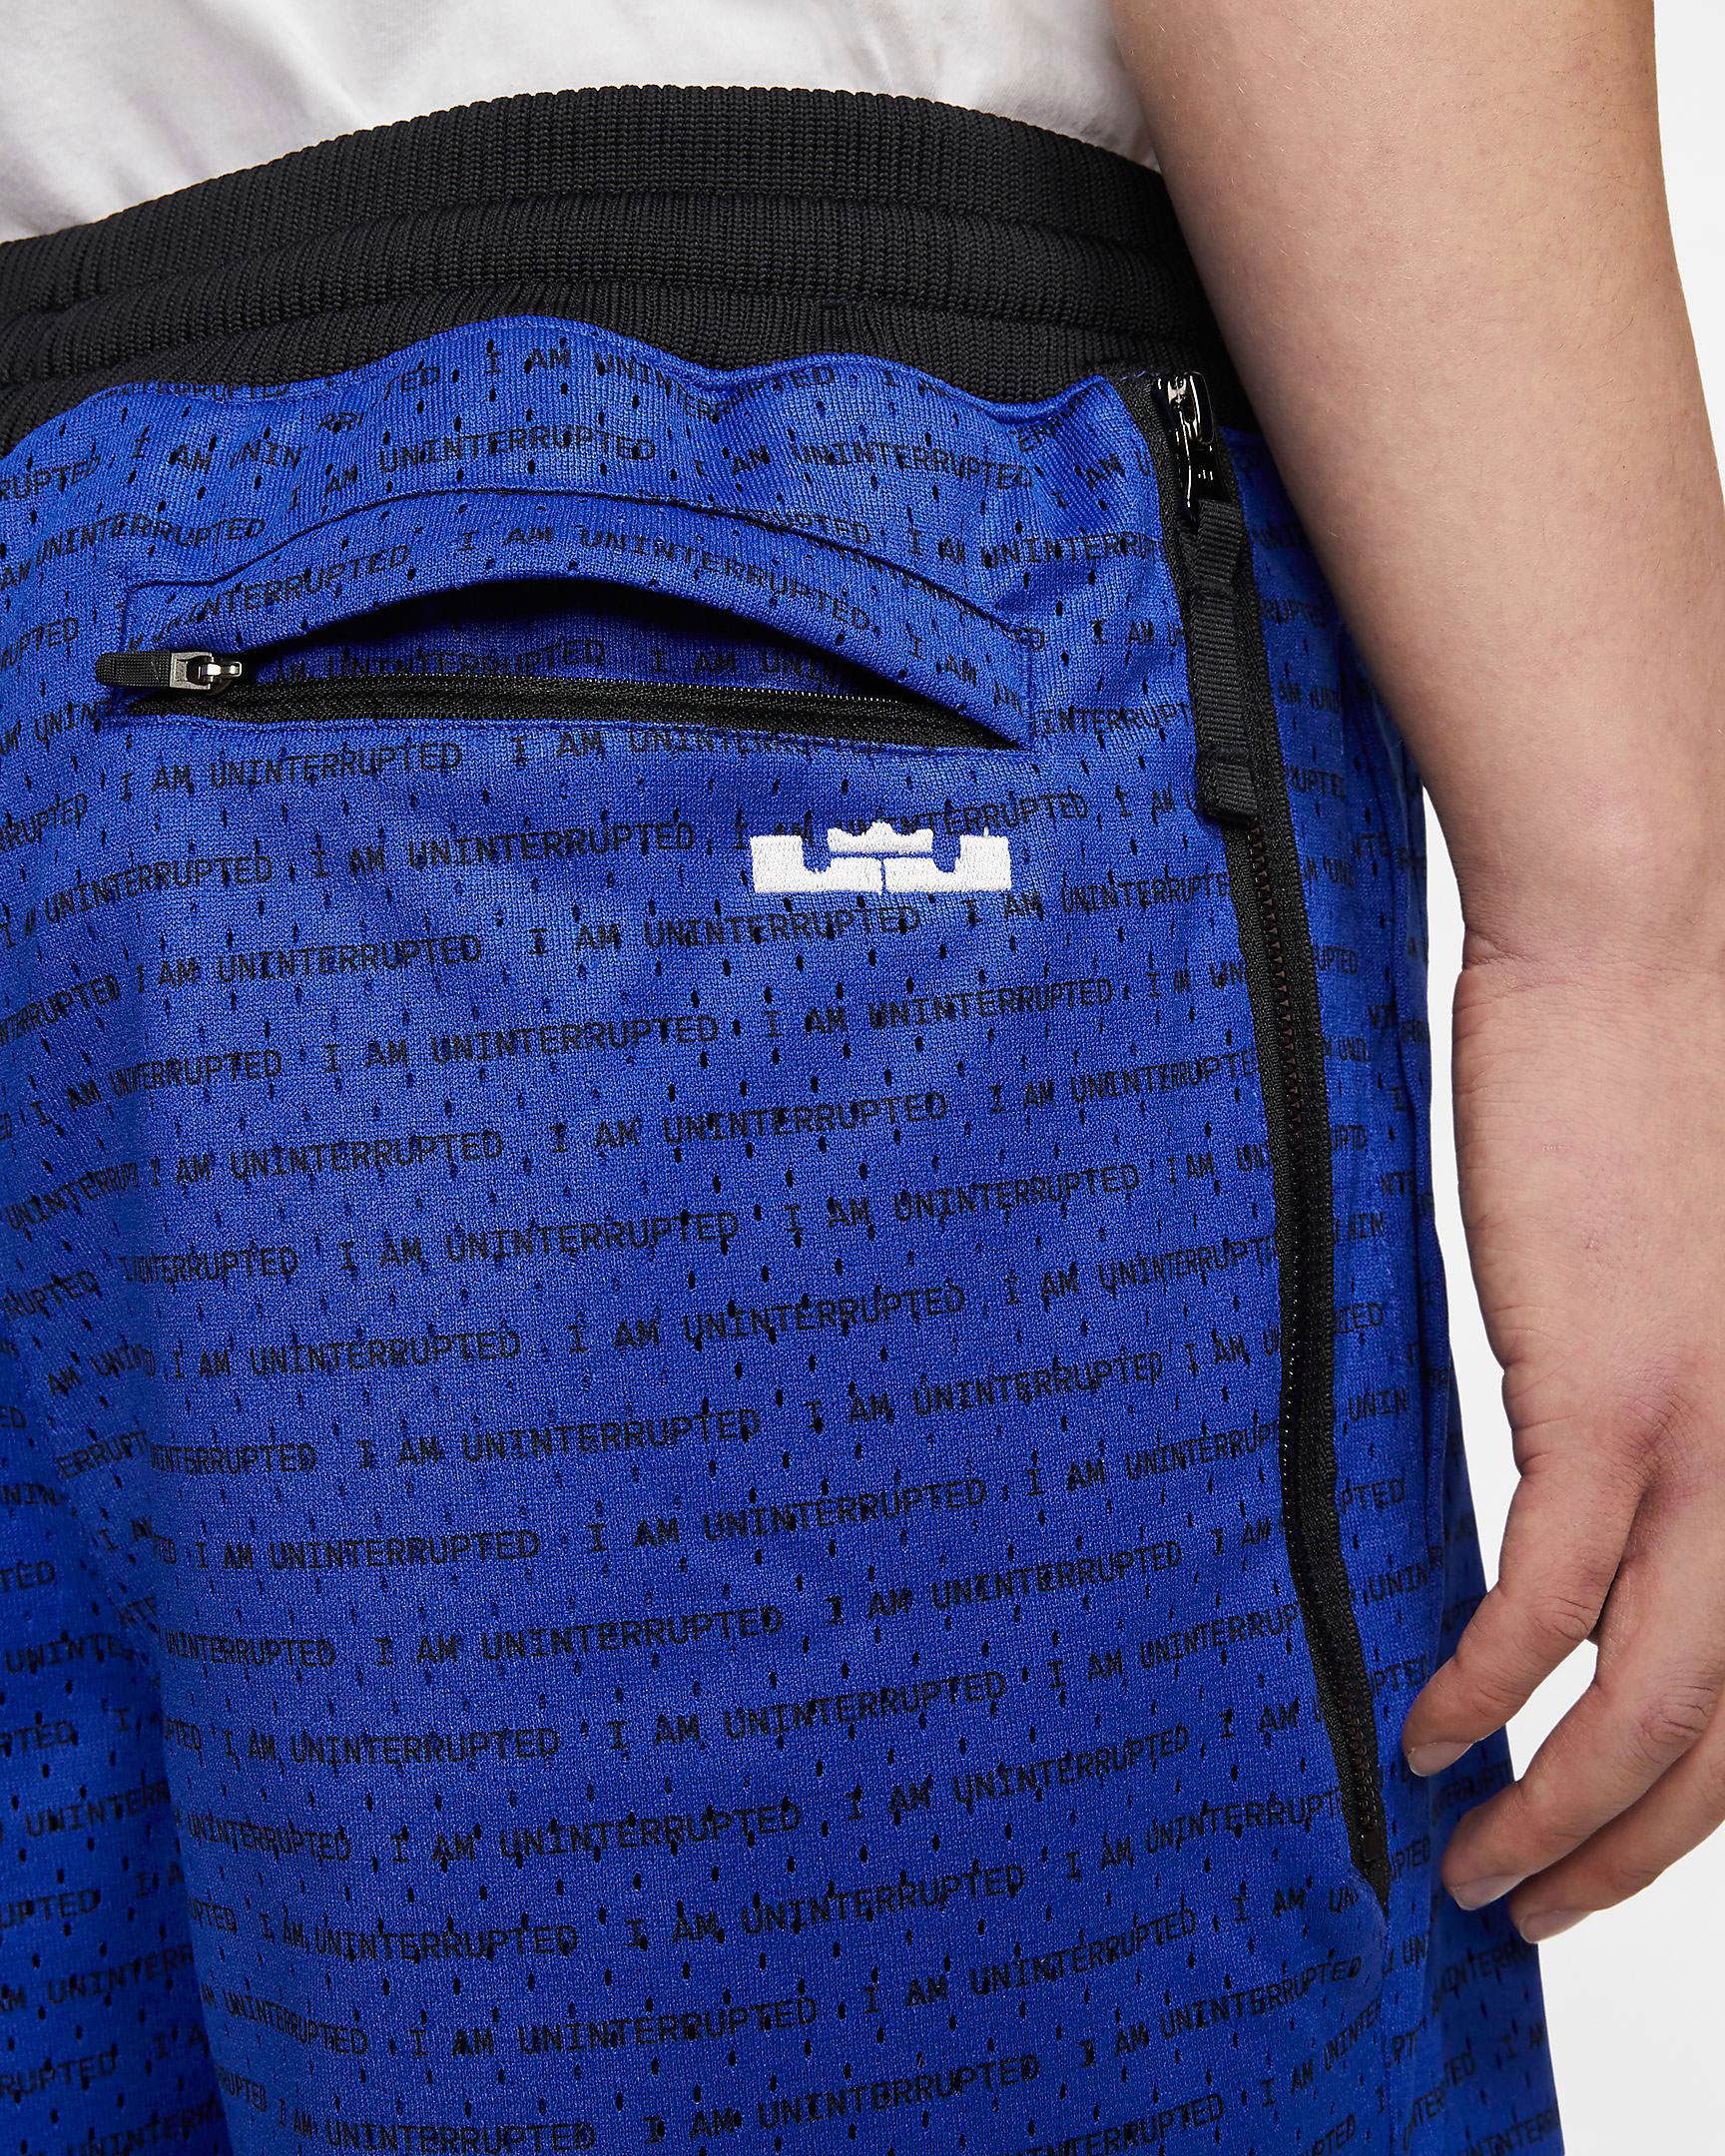 uninterrupted-nike-lebron-17-more-than-an-athlete-shorts-3